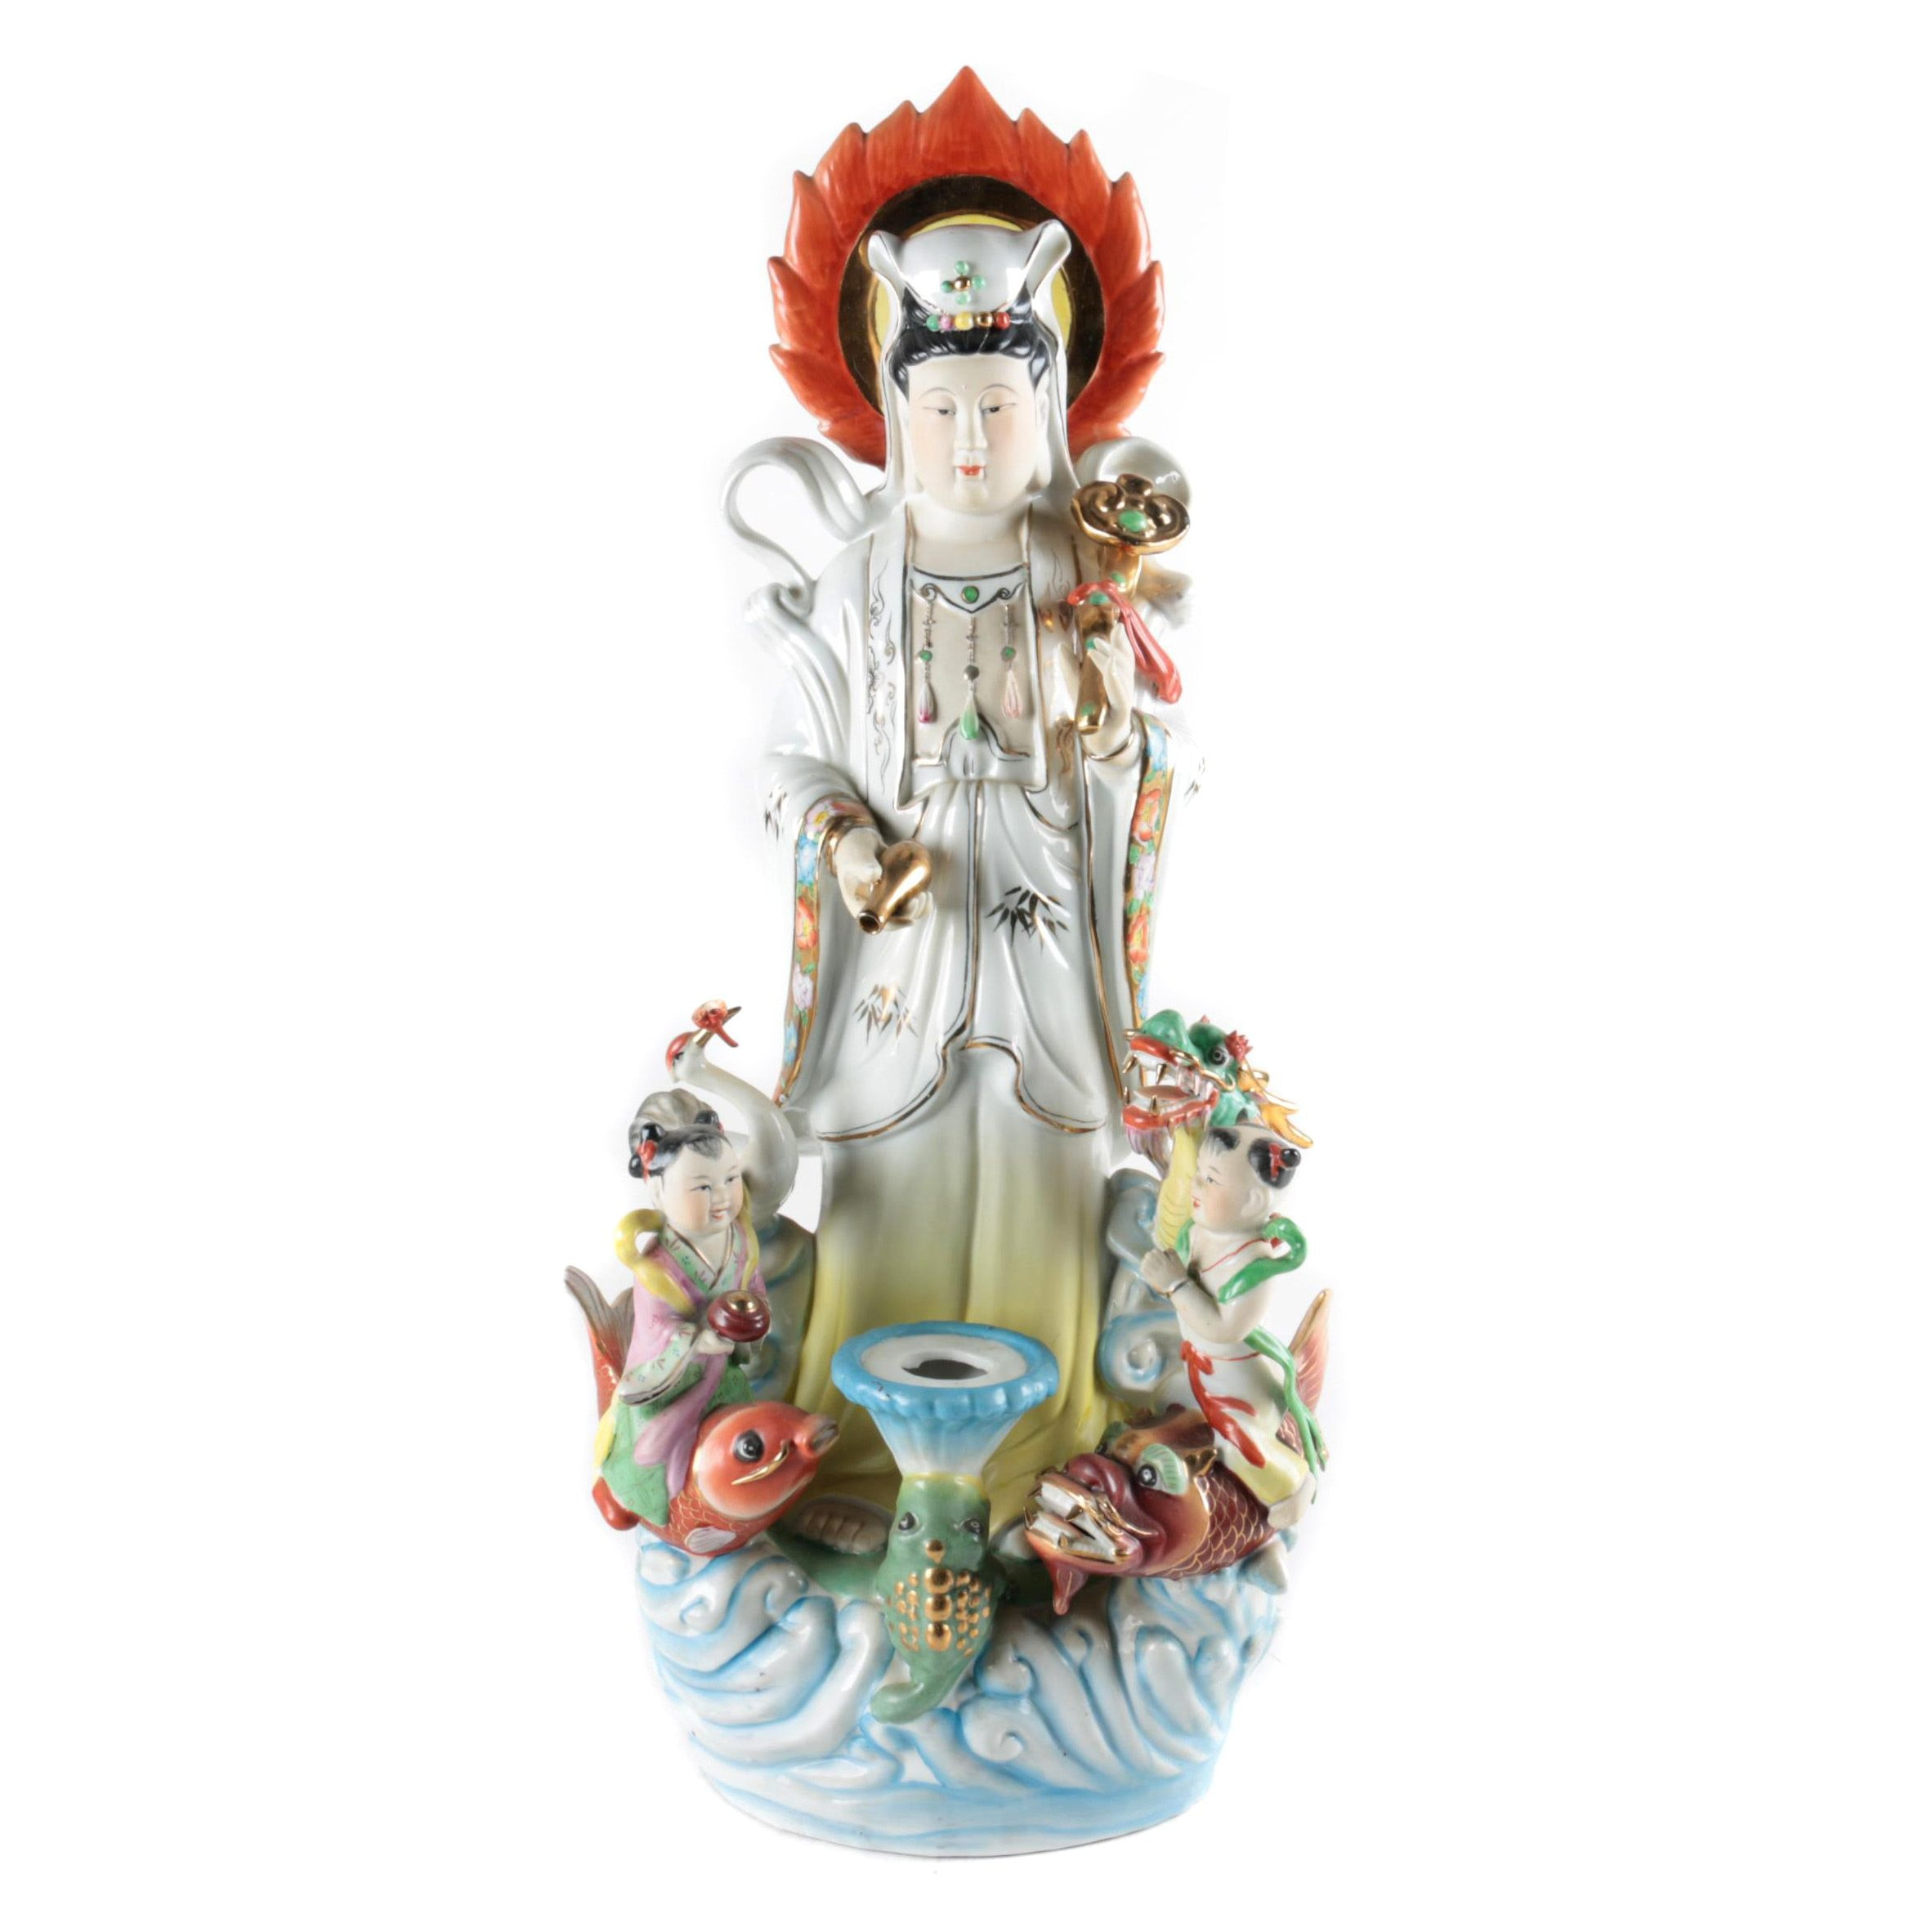 East Asian Style Ceramic Figure of Guan Yin